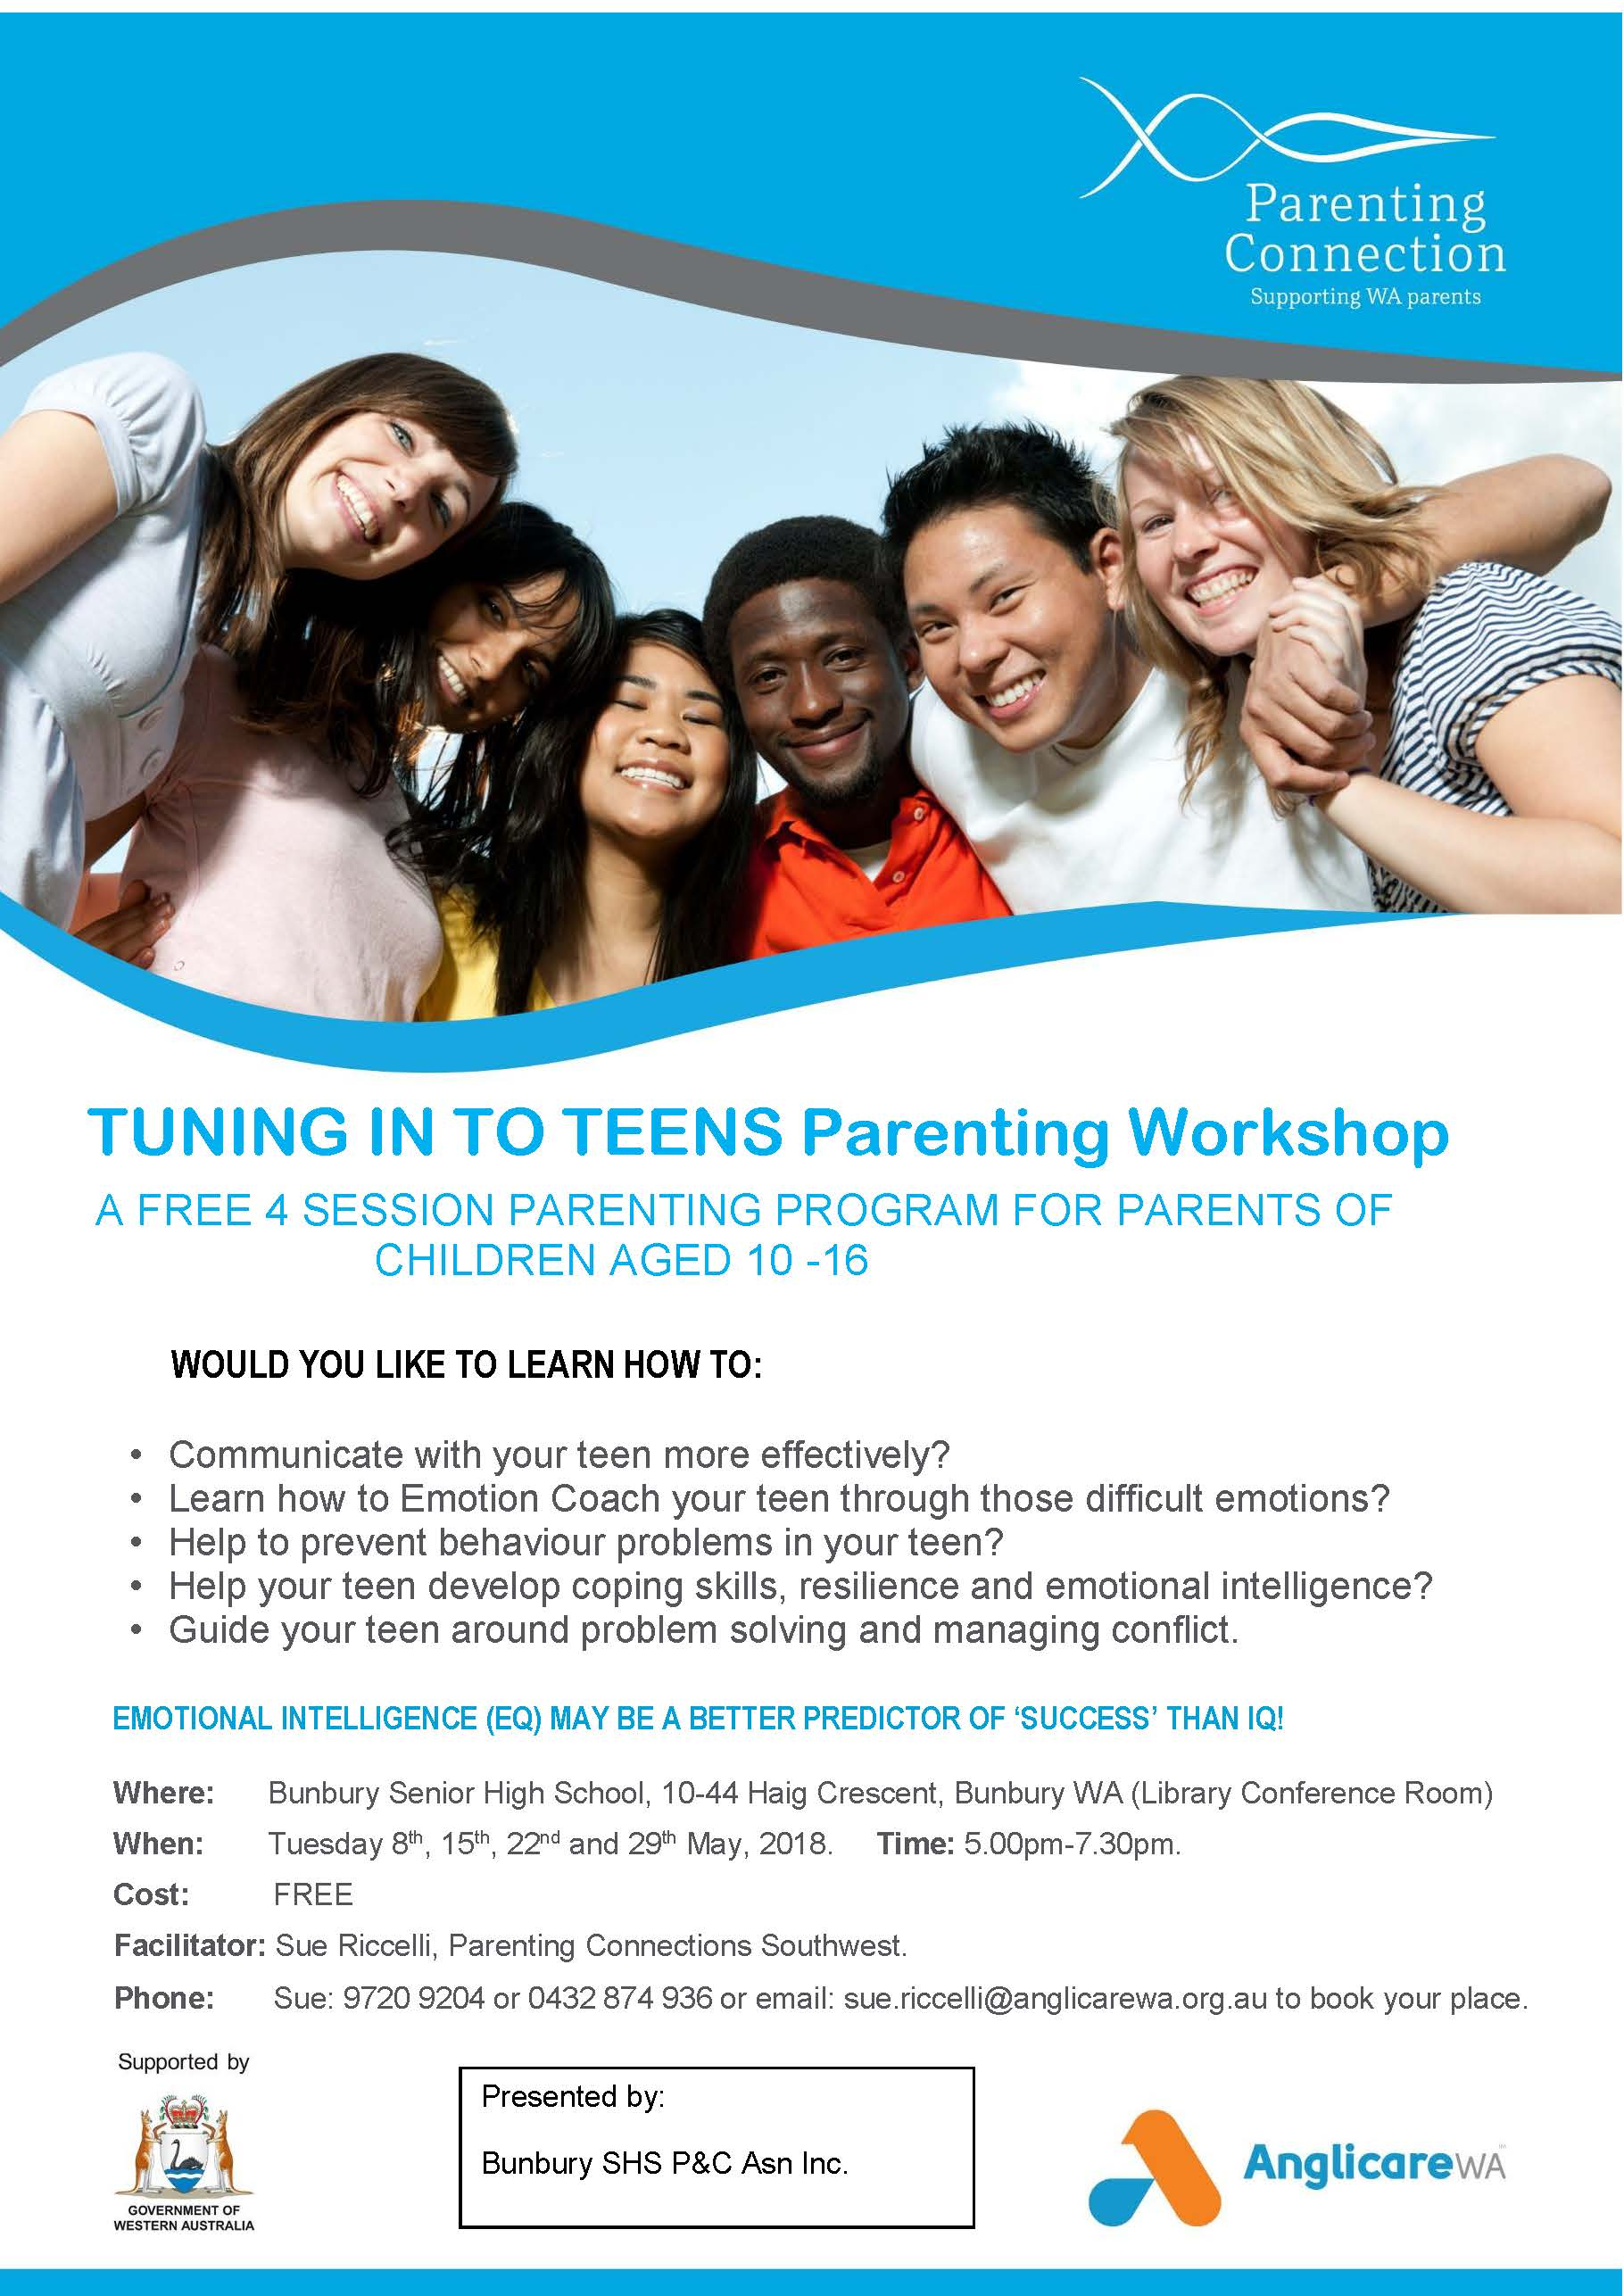 Tuning-in-to-Teens-Bunbury-SHS